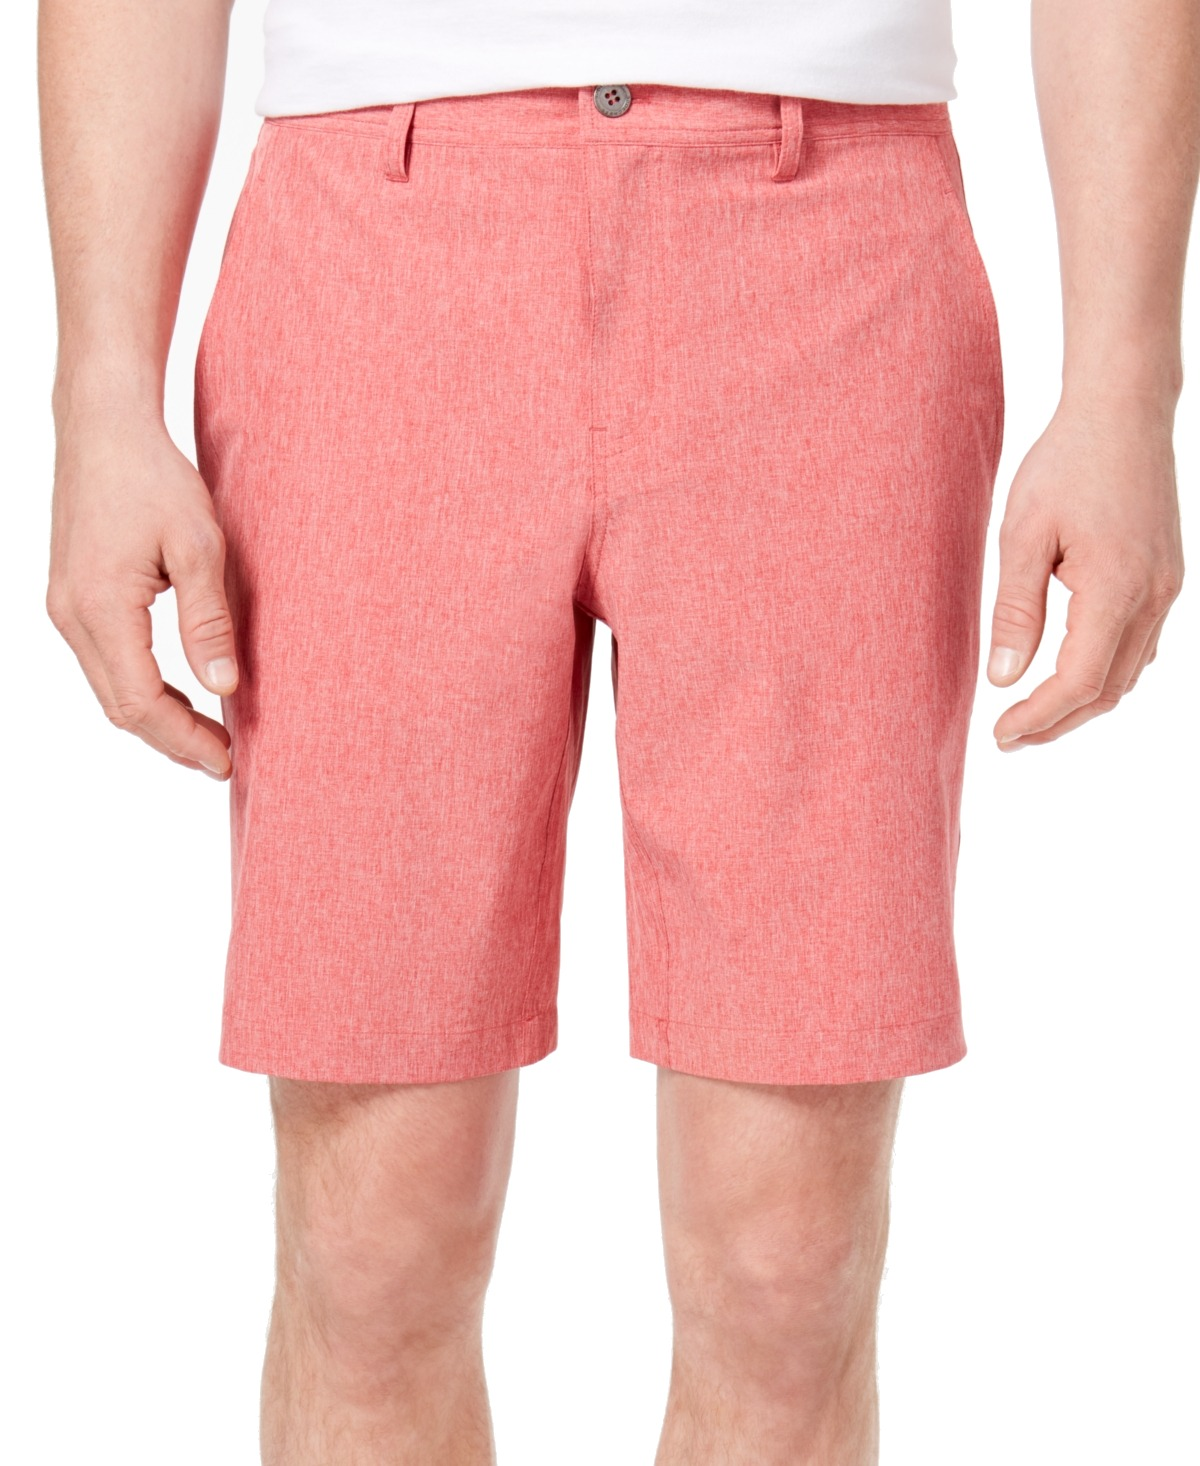 New-32-Degrees-Mens-Shorts-Solid-Bright-Red-Size-38-Stretch-Performance-39-313